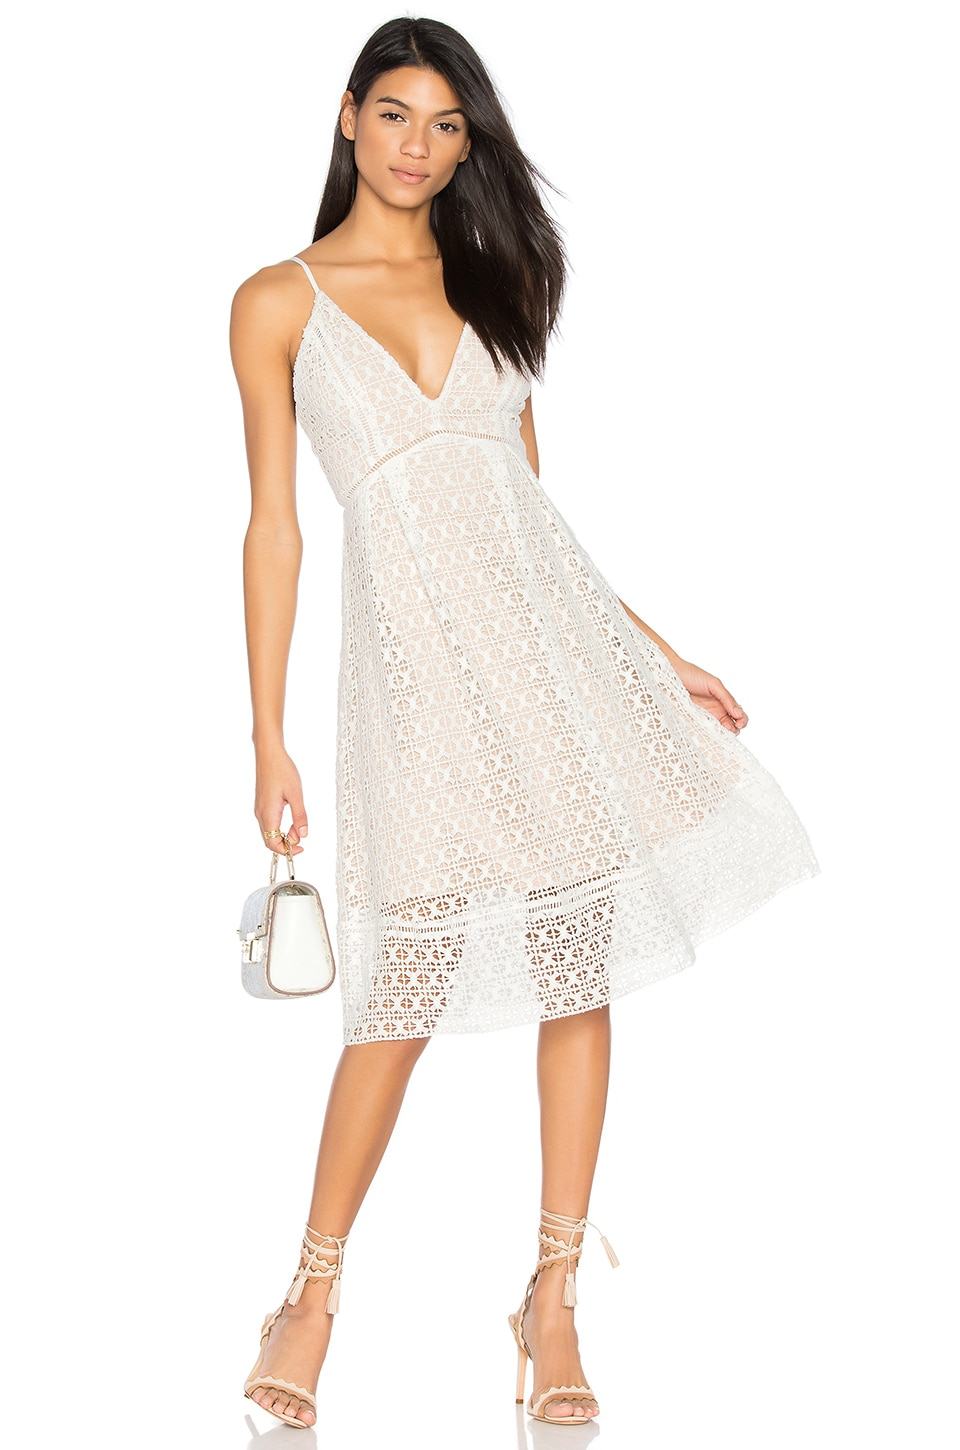 J.O.A. Crochet Dress in White